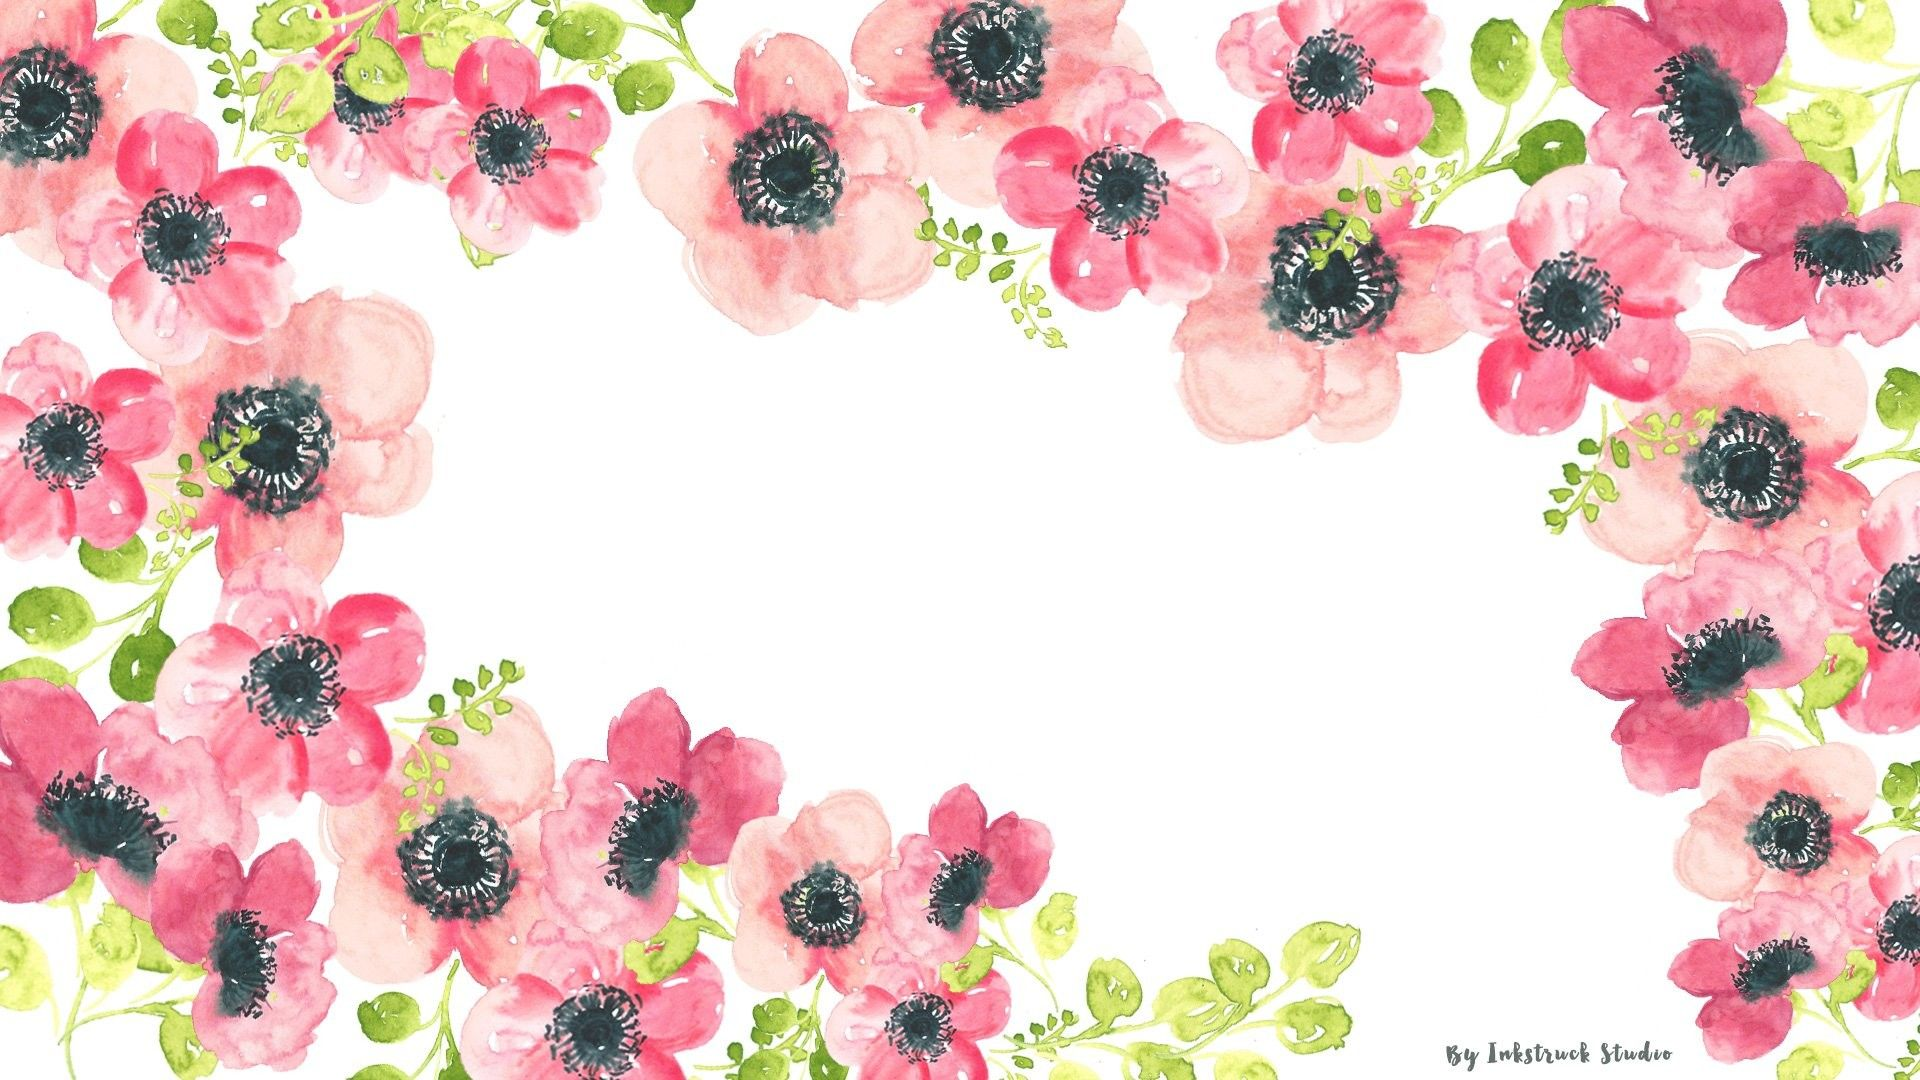 Watercolor Flowers Desktop Wallpapers Top Free Watercolor Flowers Desktop Backgrounds Wallpaperaccess